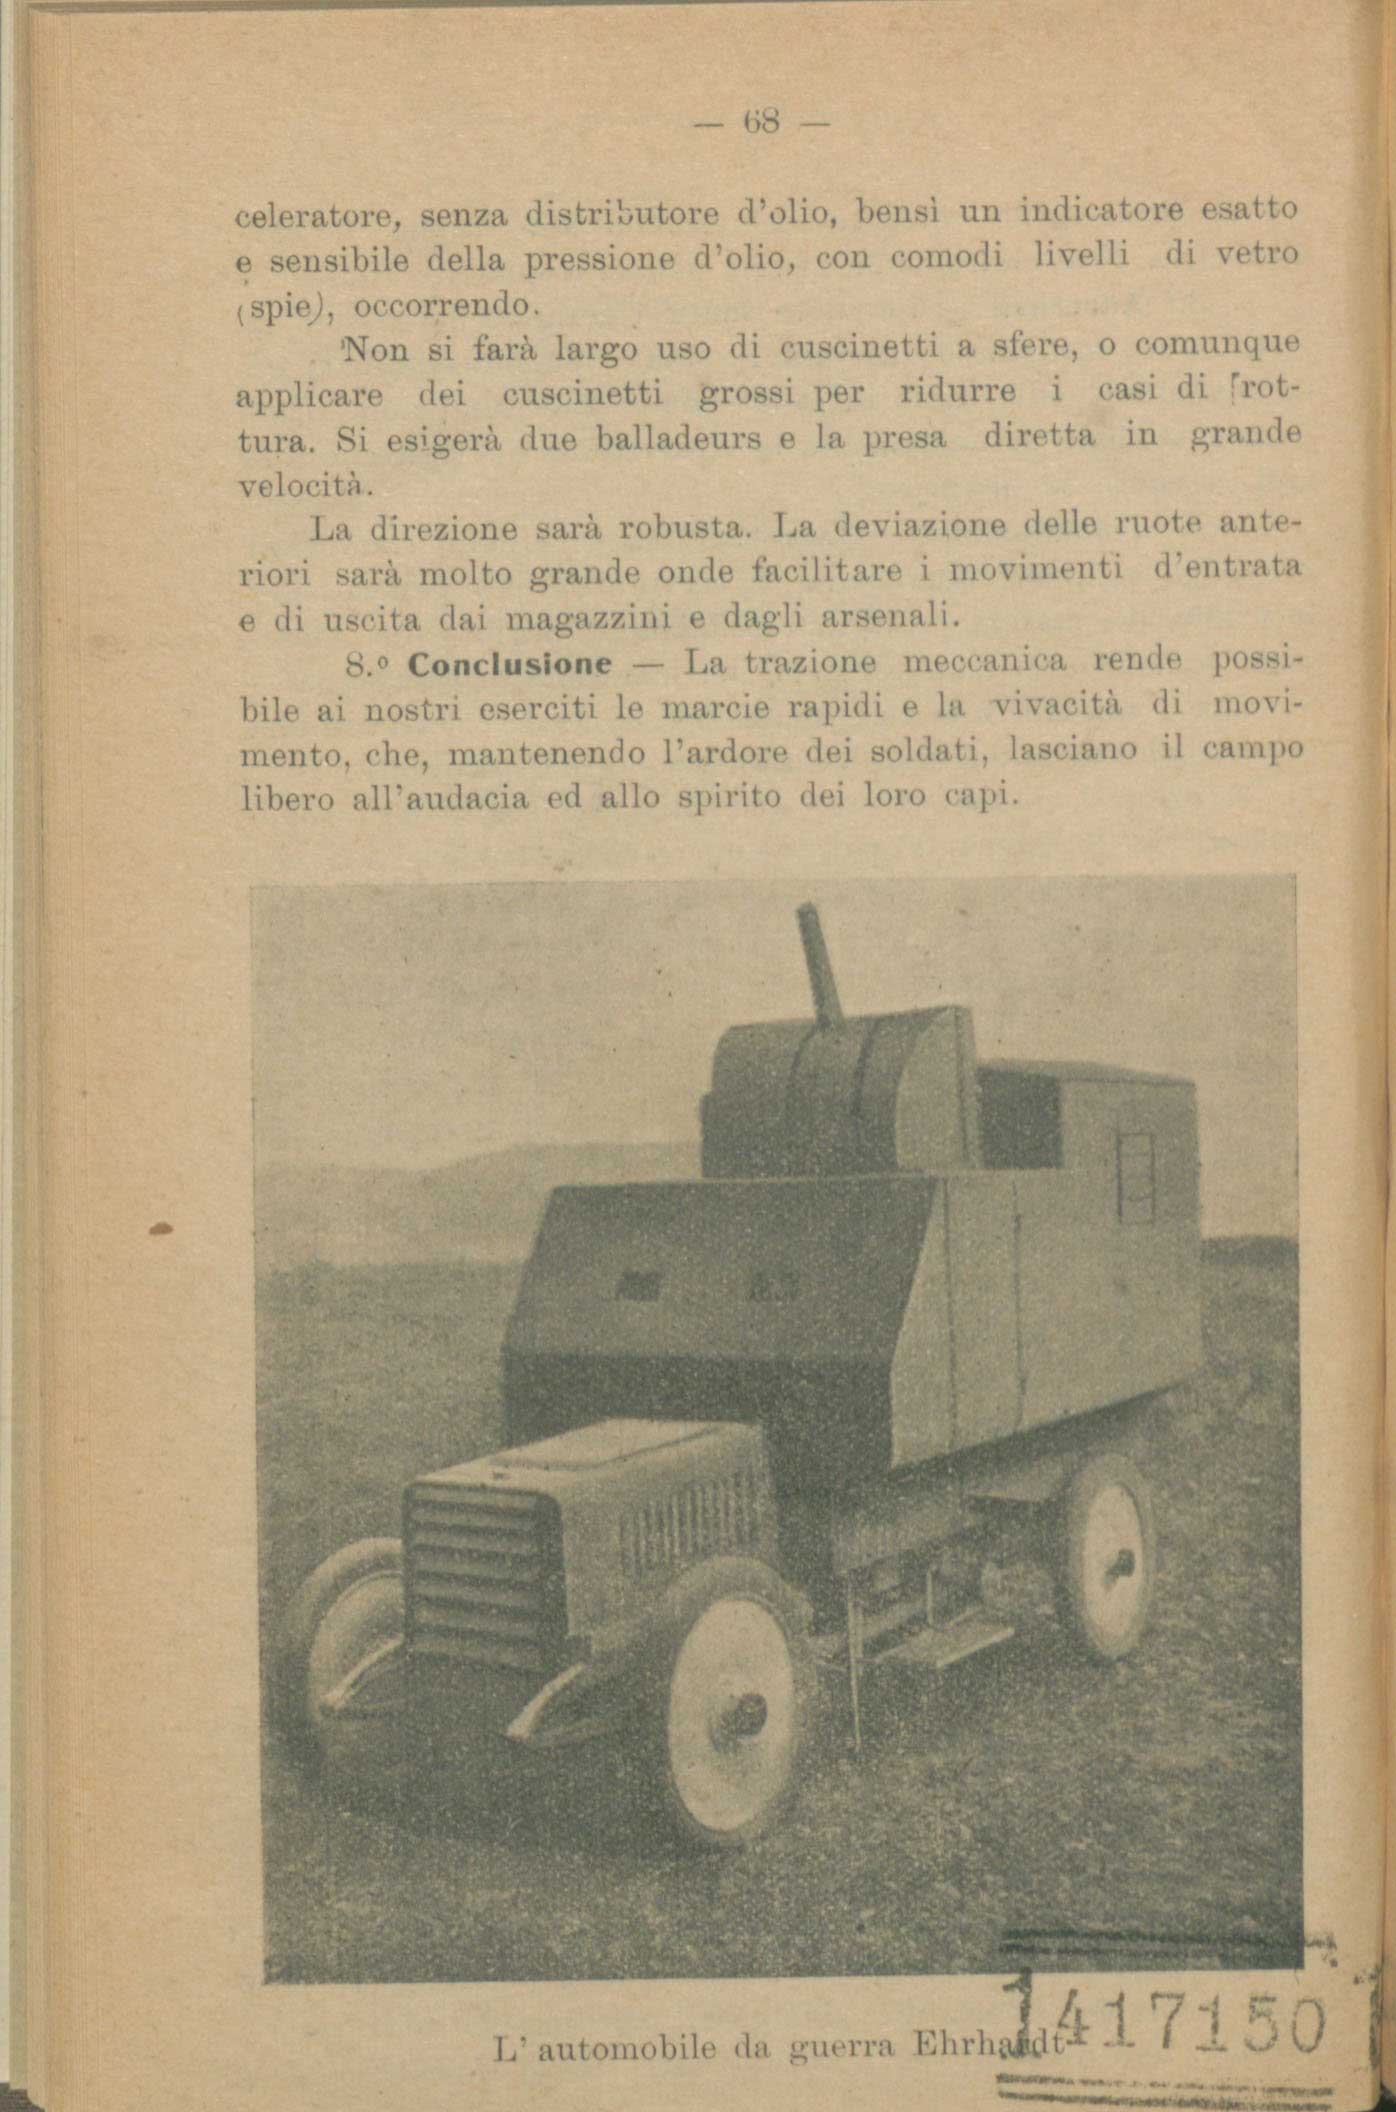 The German Ehrhardt armoured vehicle could carry three machine-guns. It was mainly used in a domestic policing role.